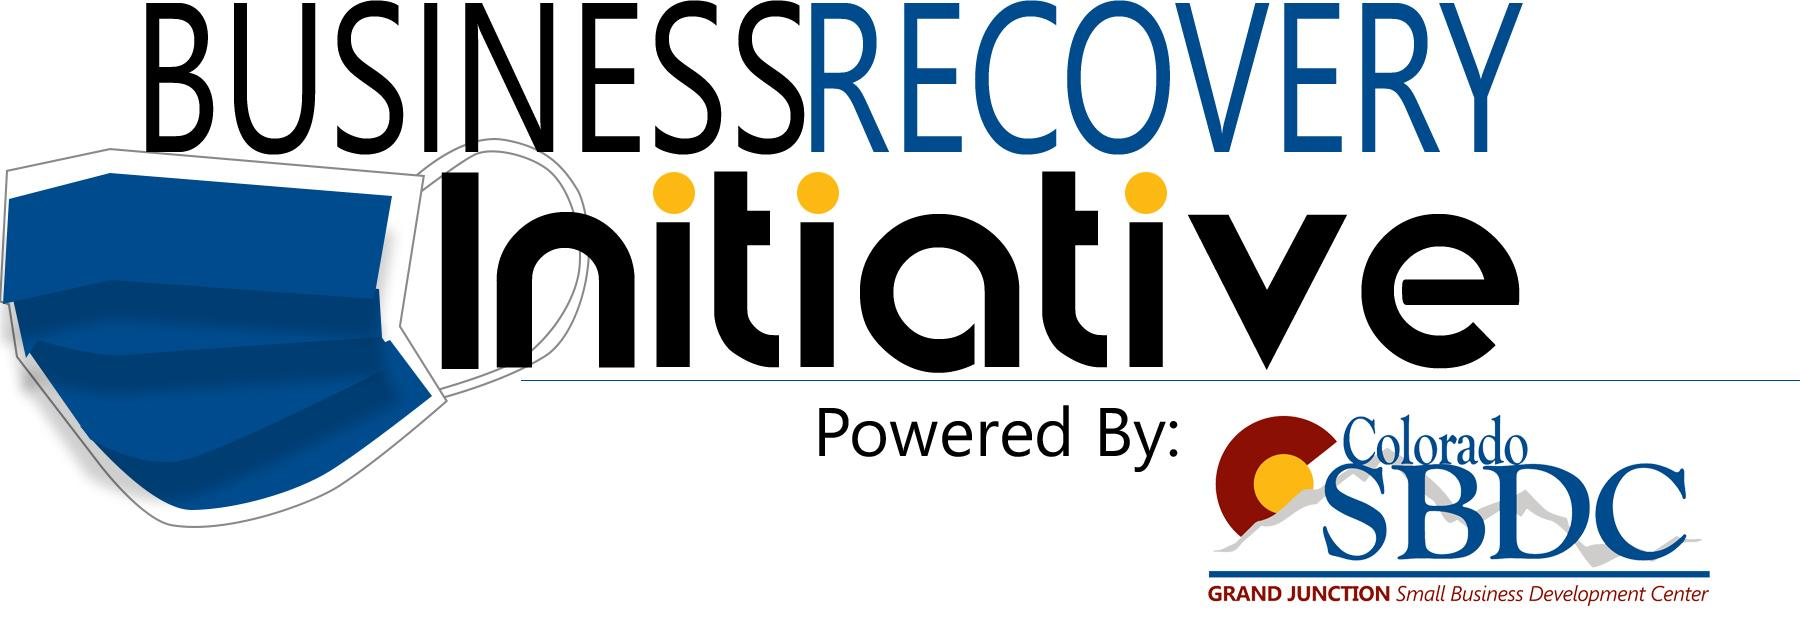 Business Recovery Initiative